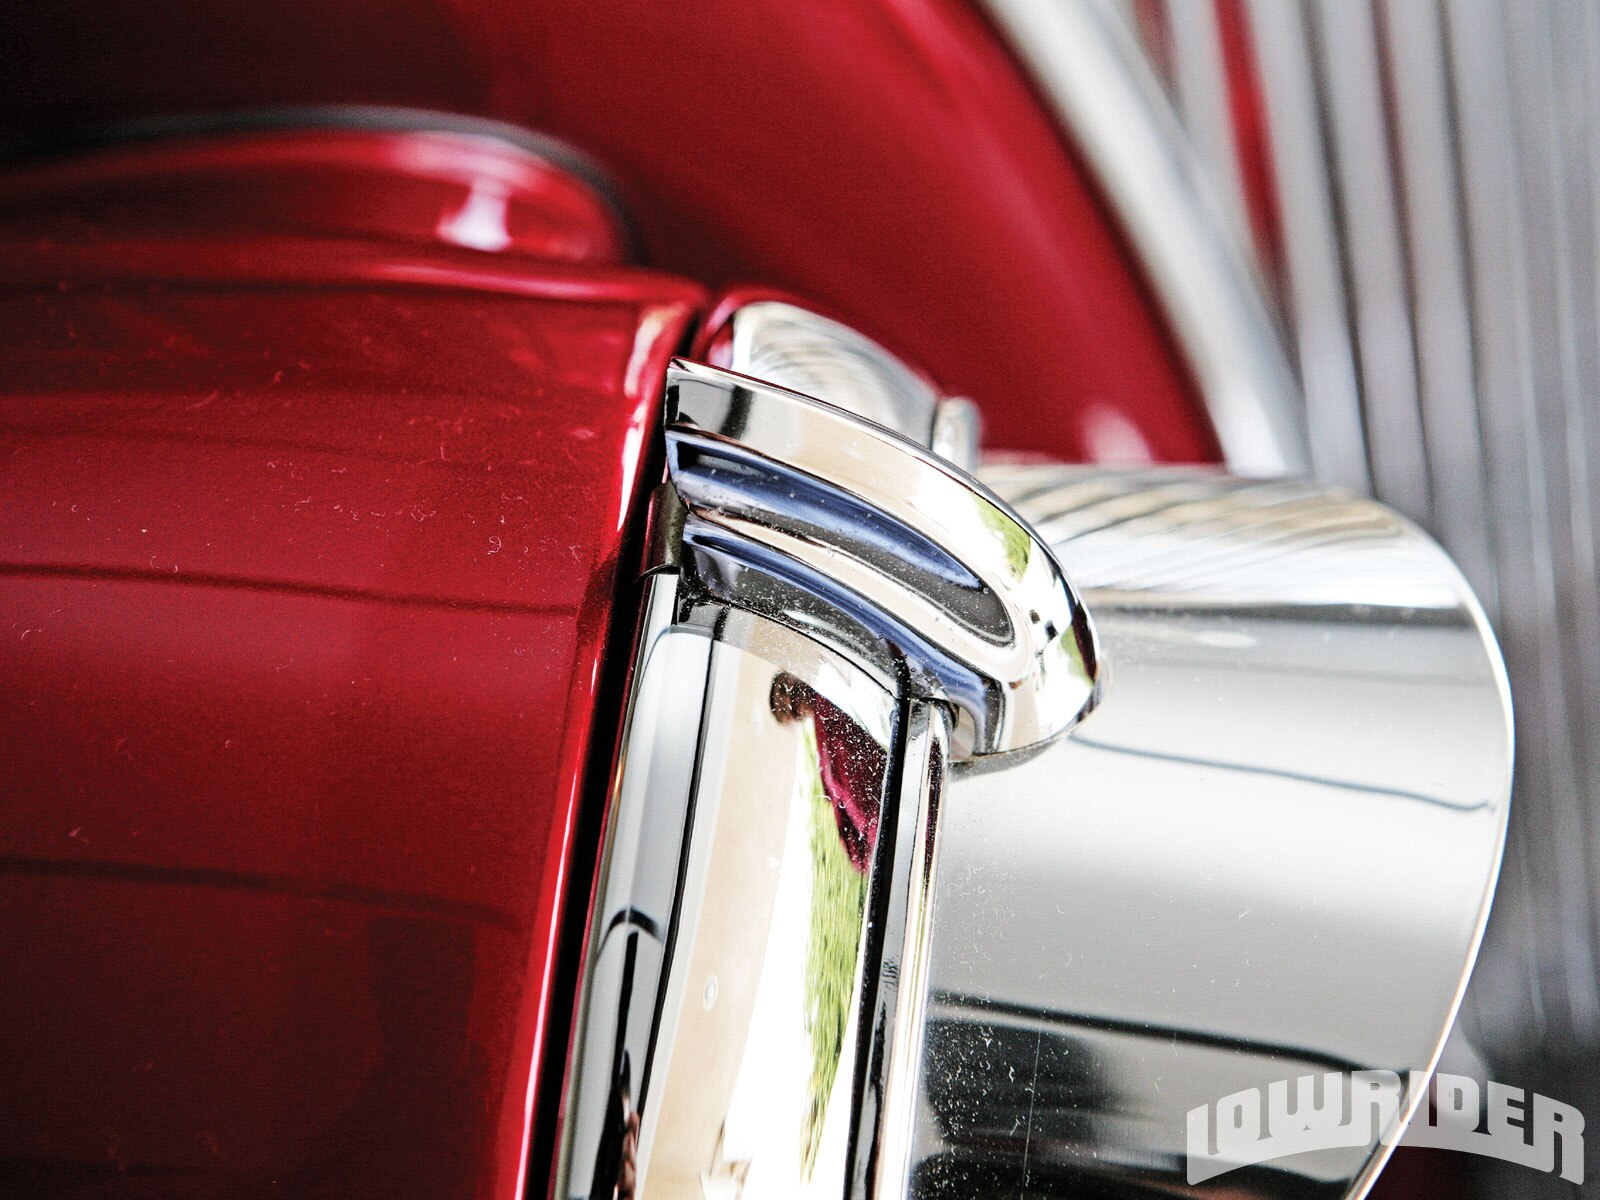 Deluxe Auto Parts >> Classic Car Parts & Accessories - Remington Shaver - Lowrider Magazine